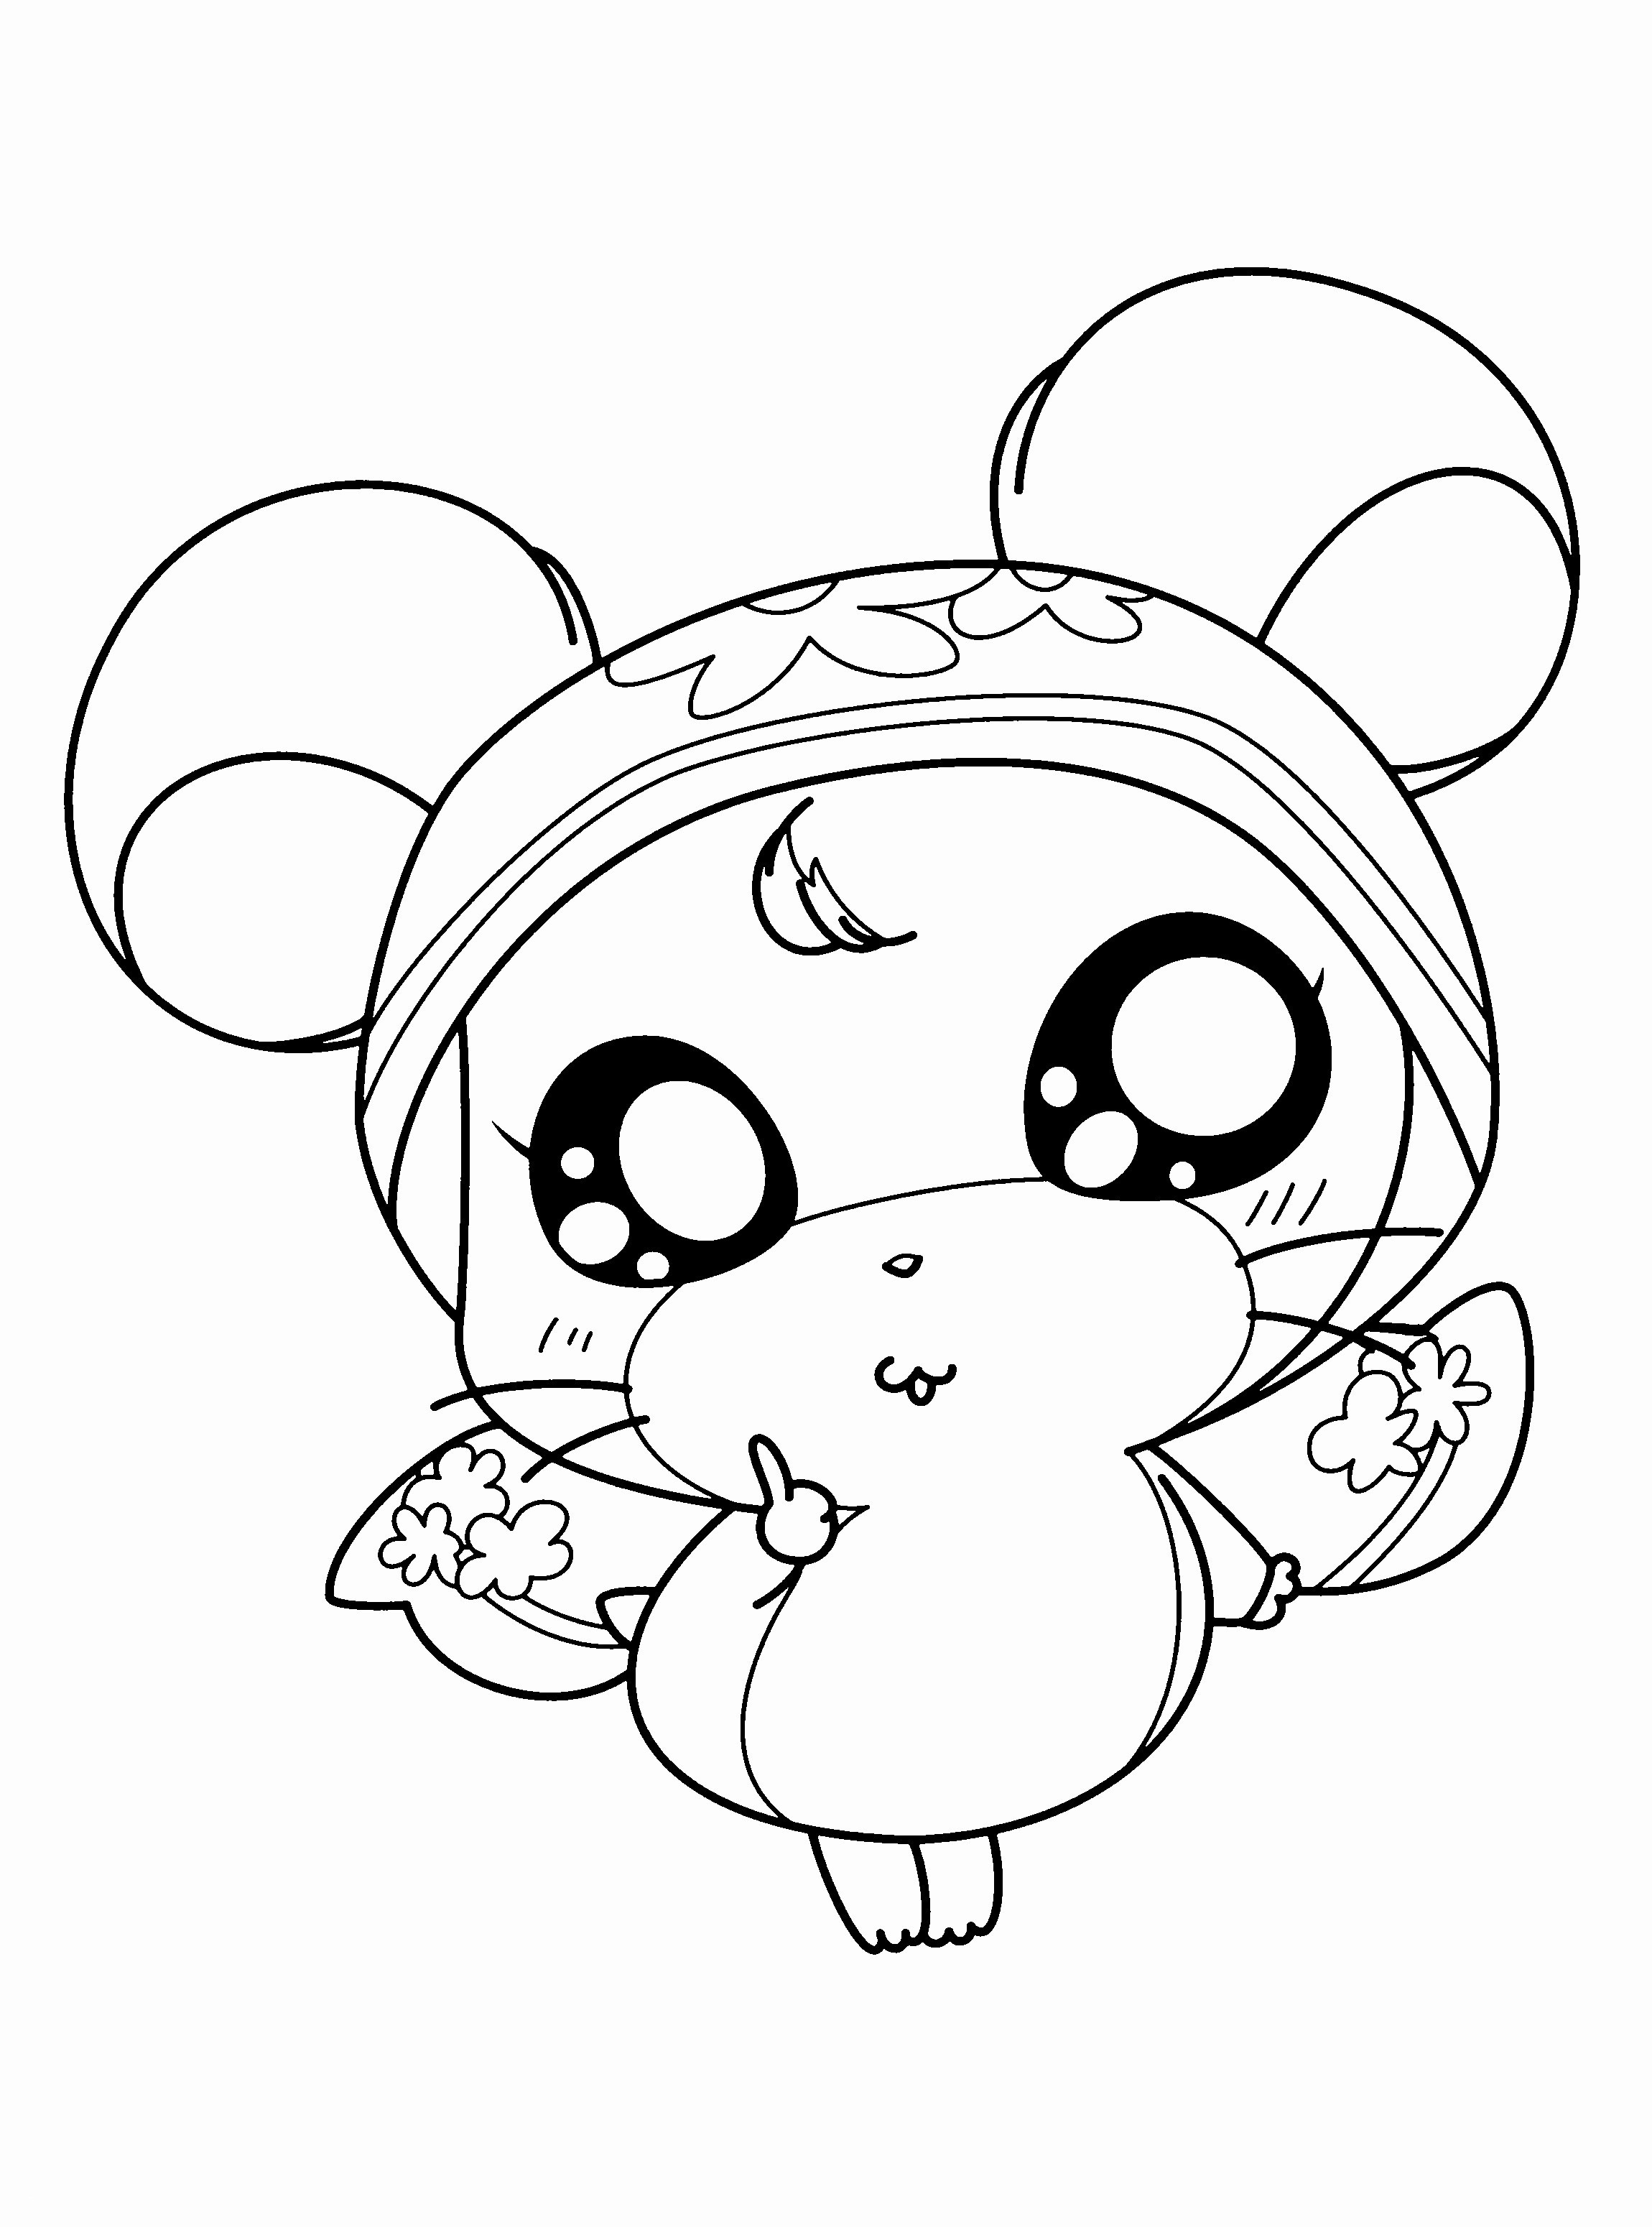 animals coloring pages for kids Collection-Animal Coloring Pages for Kids Unique Printable Coloring Pages for Kids Elegant Coloring Printables 0d 17-c